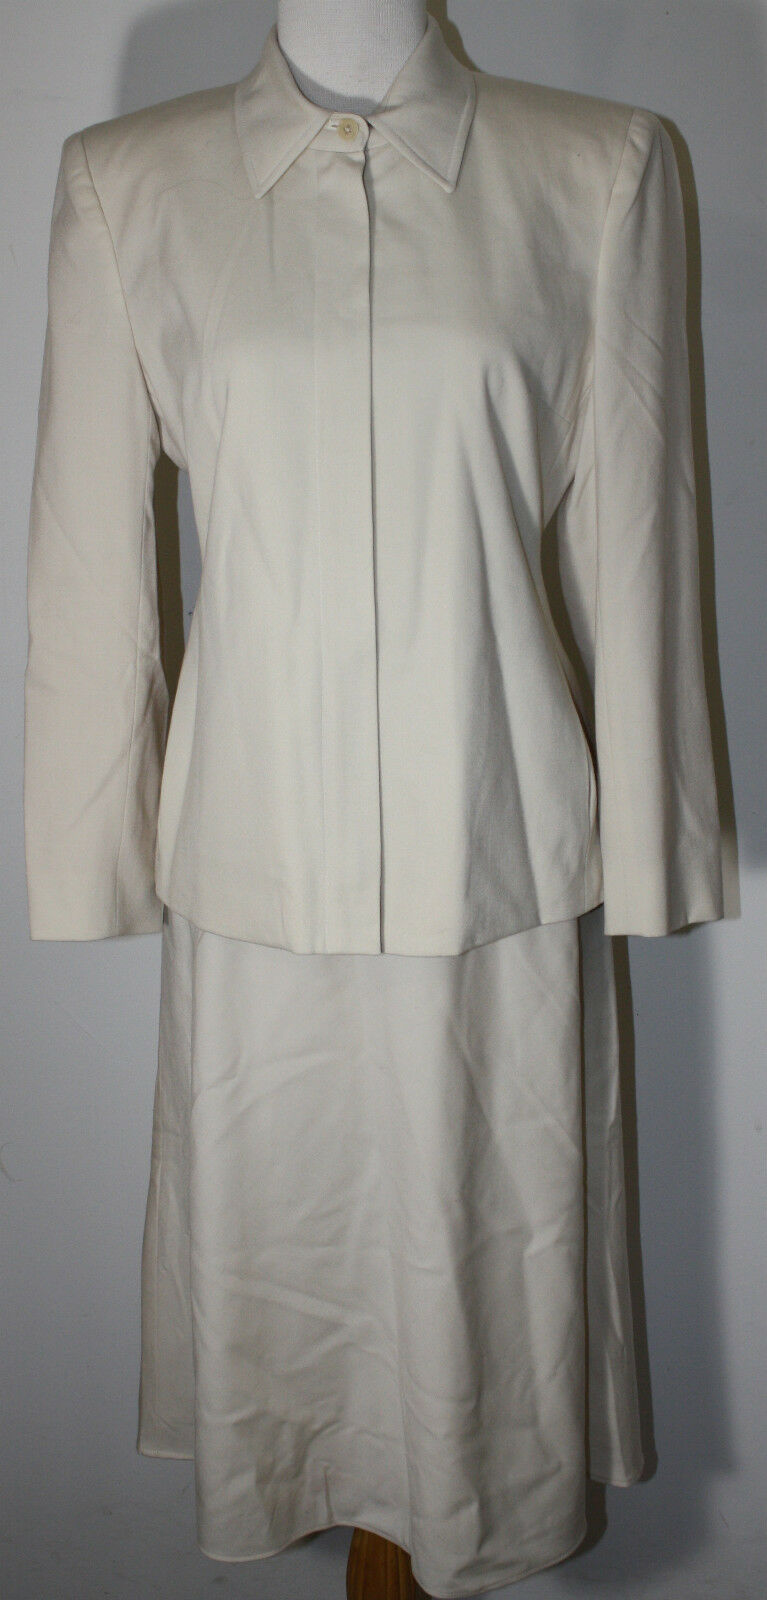 RALPH LAUREN LRL Off White Ivory Worsted Wool Skirt Suit 4 6 8